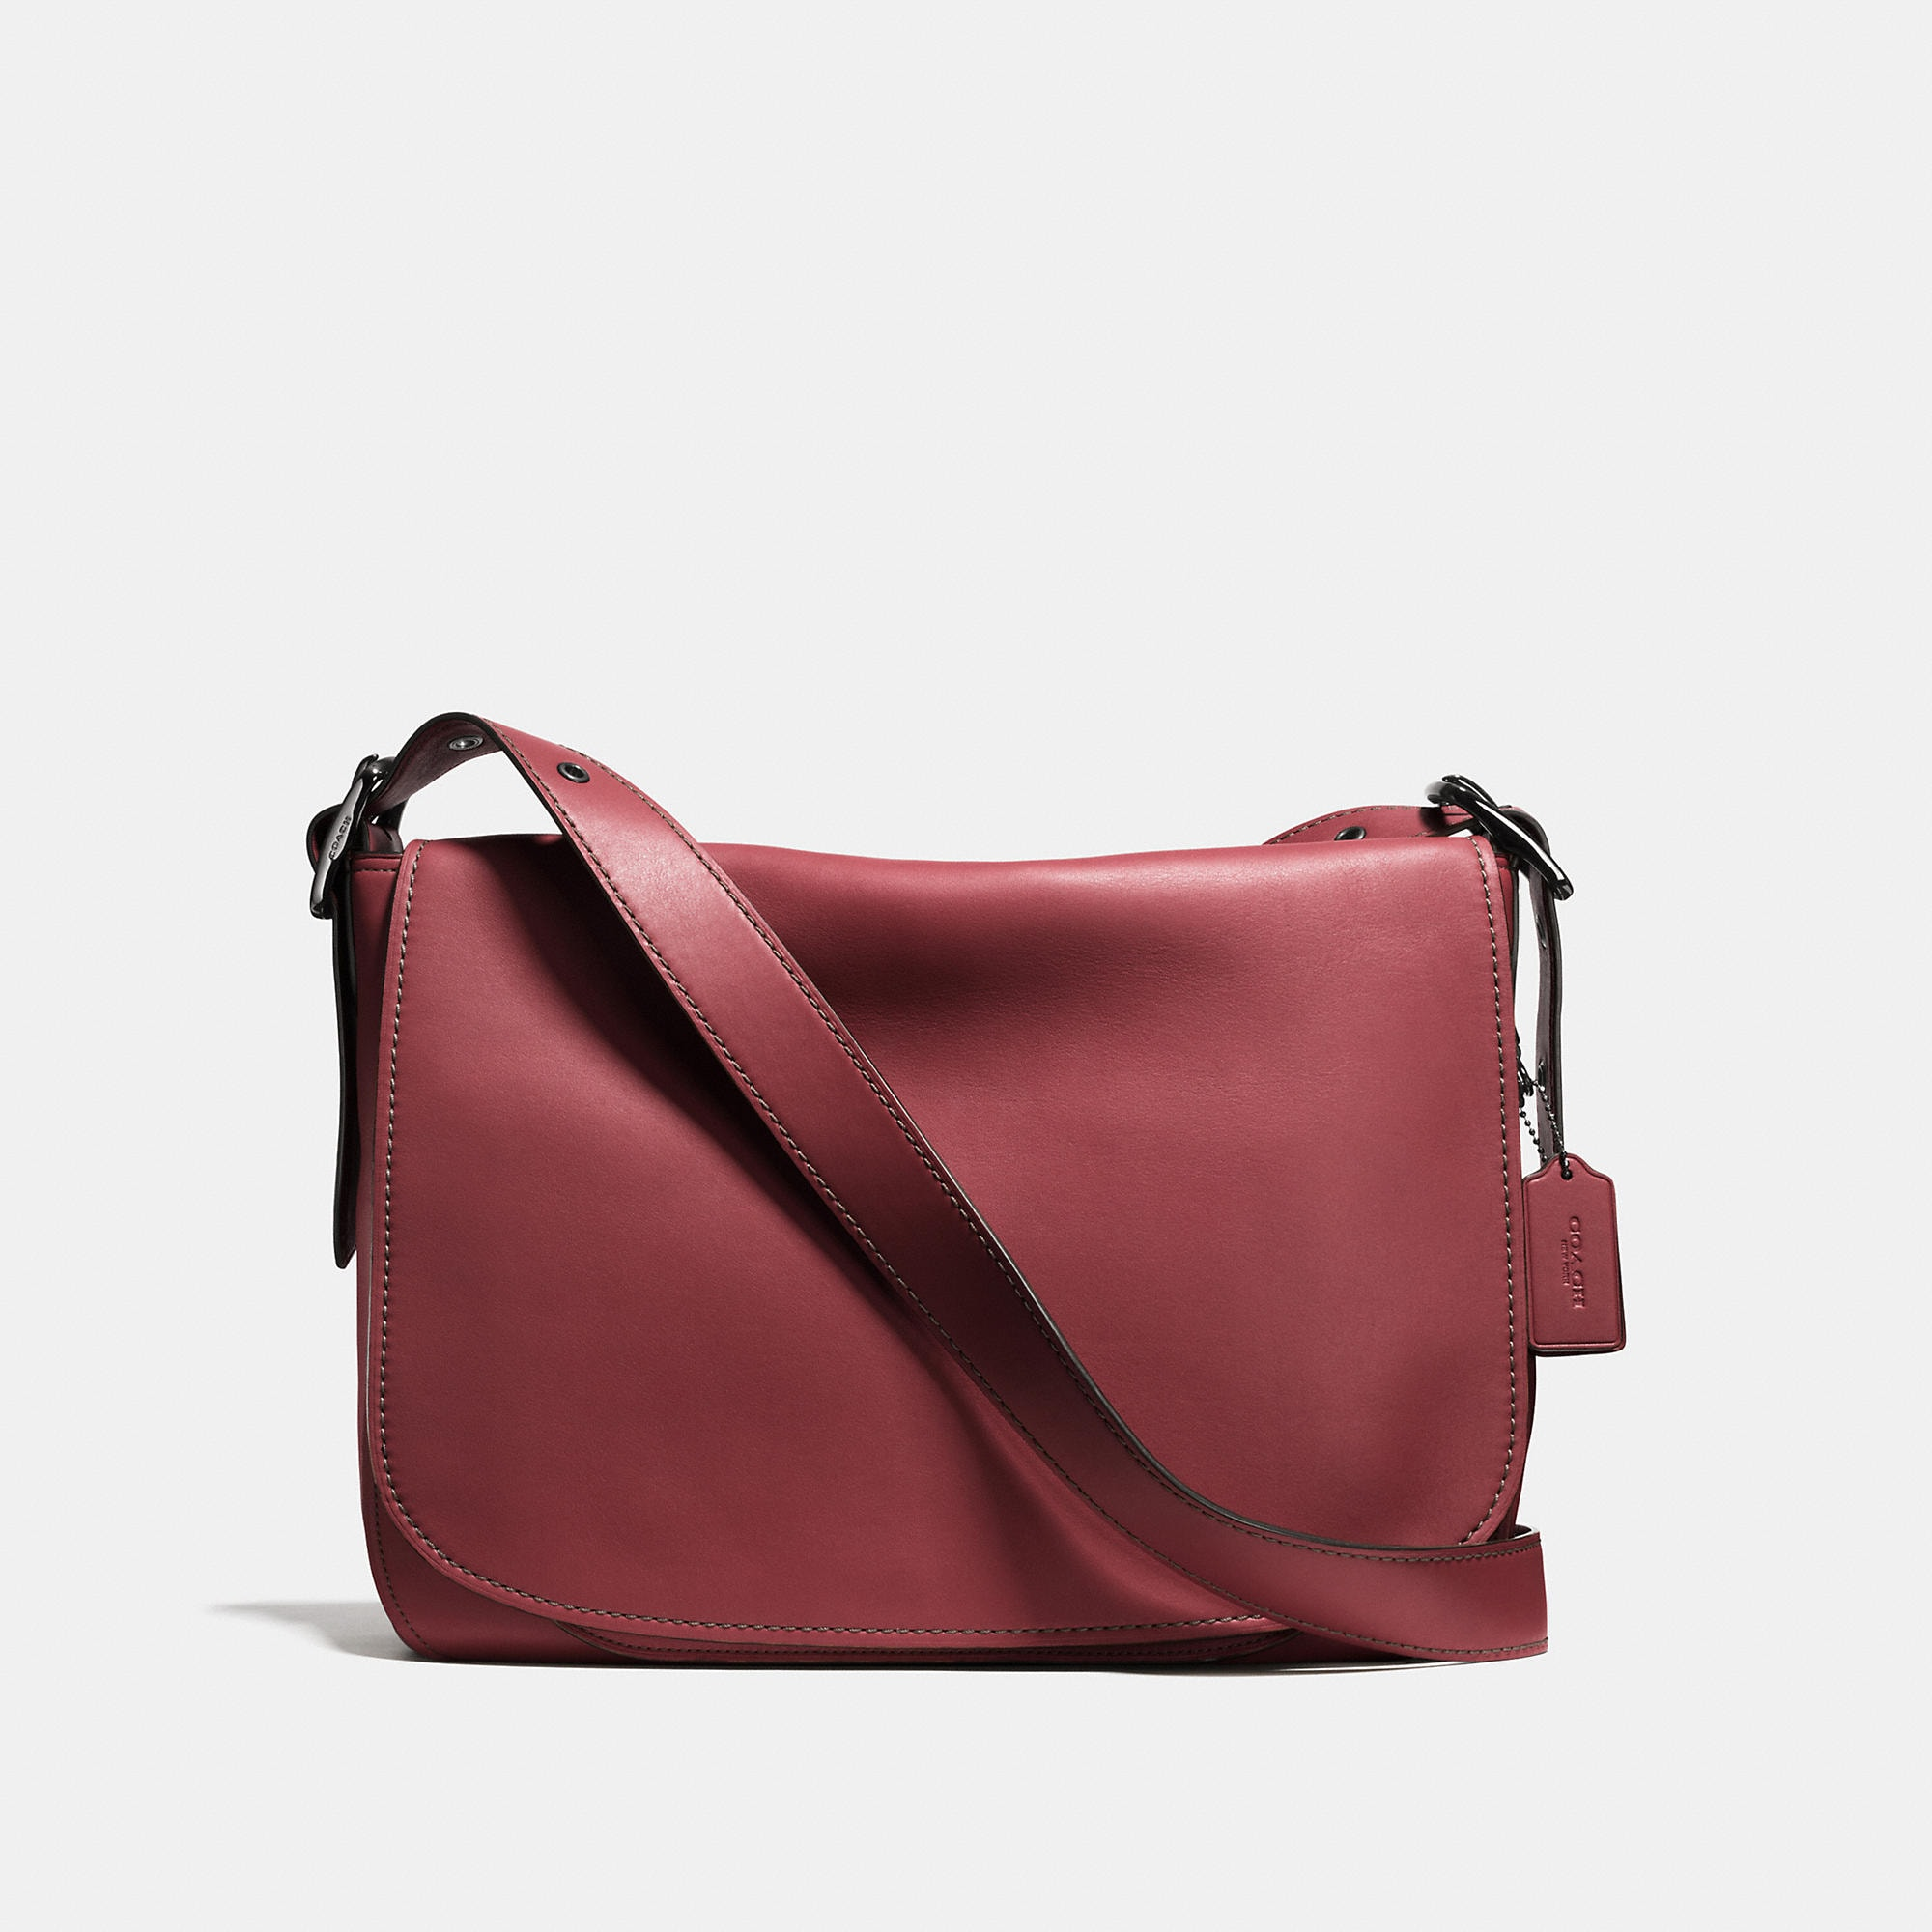 Coach Saddle Bag Messenger 38 In Glovetanned Leather